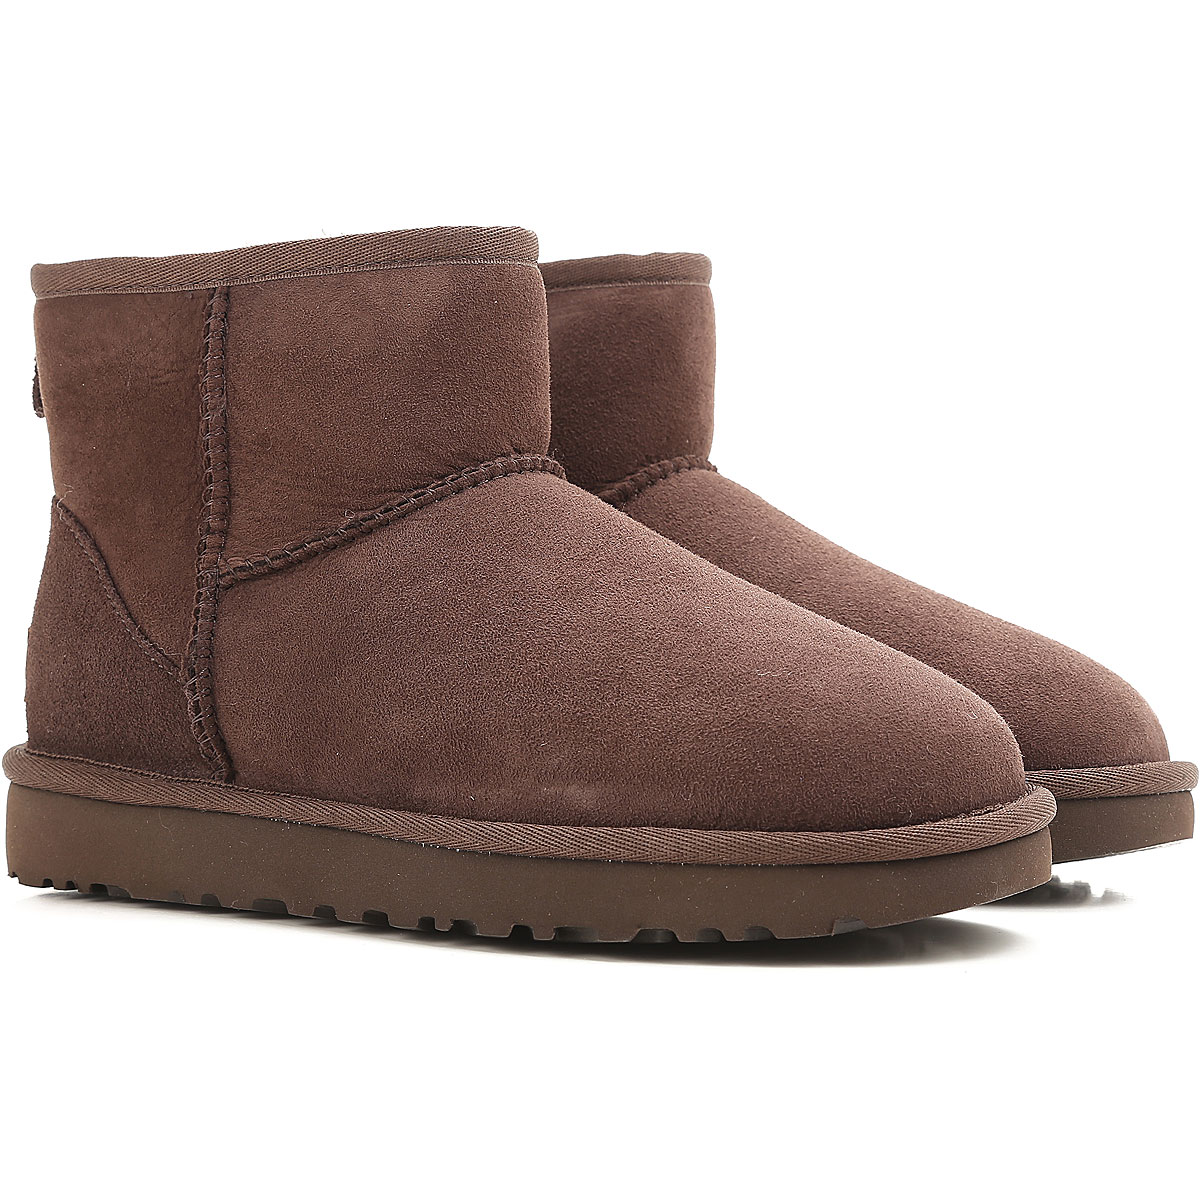 UGG Boots for Women, Booties On Sale, Choccolate, suede, 2019, USA 5 UK 3 5 EU 36 JAPAN 220 USA 6 UK 4 5 EU 37 JAPAN 230 USA 7 UK 5 5 EU 38